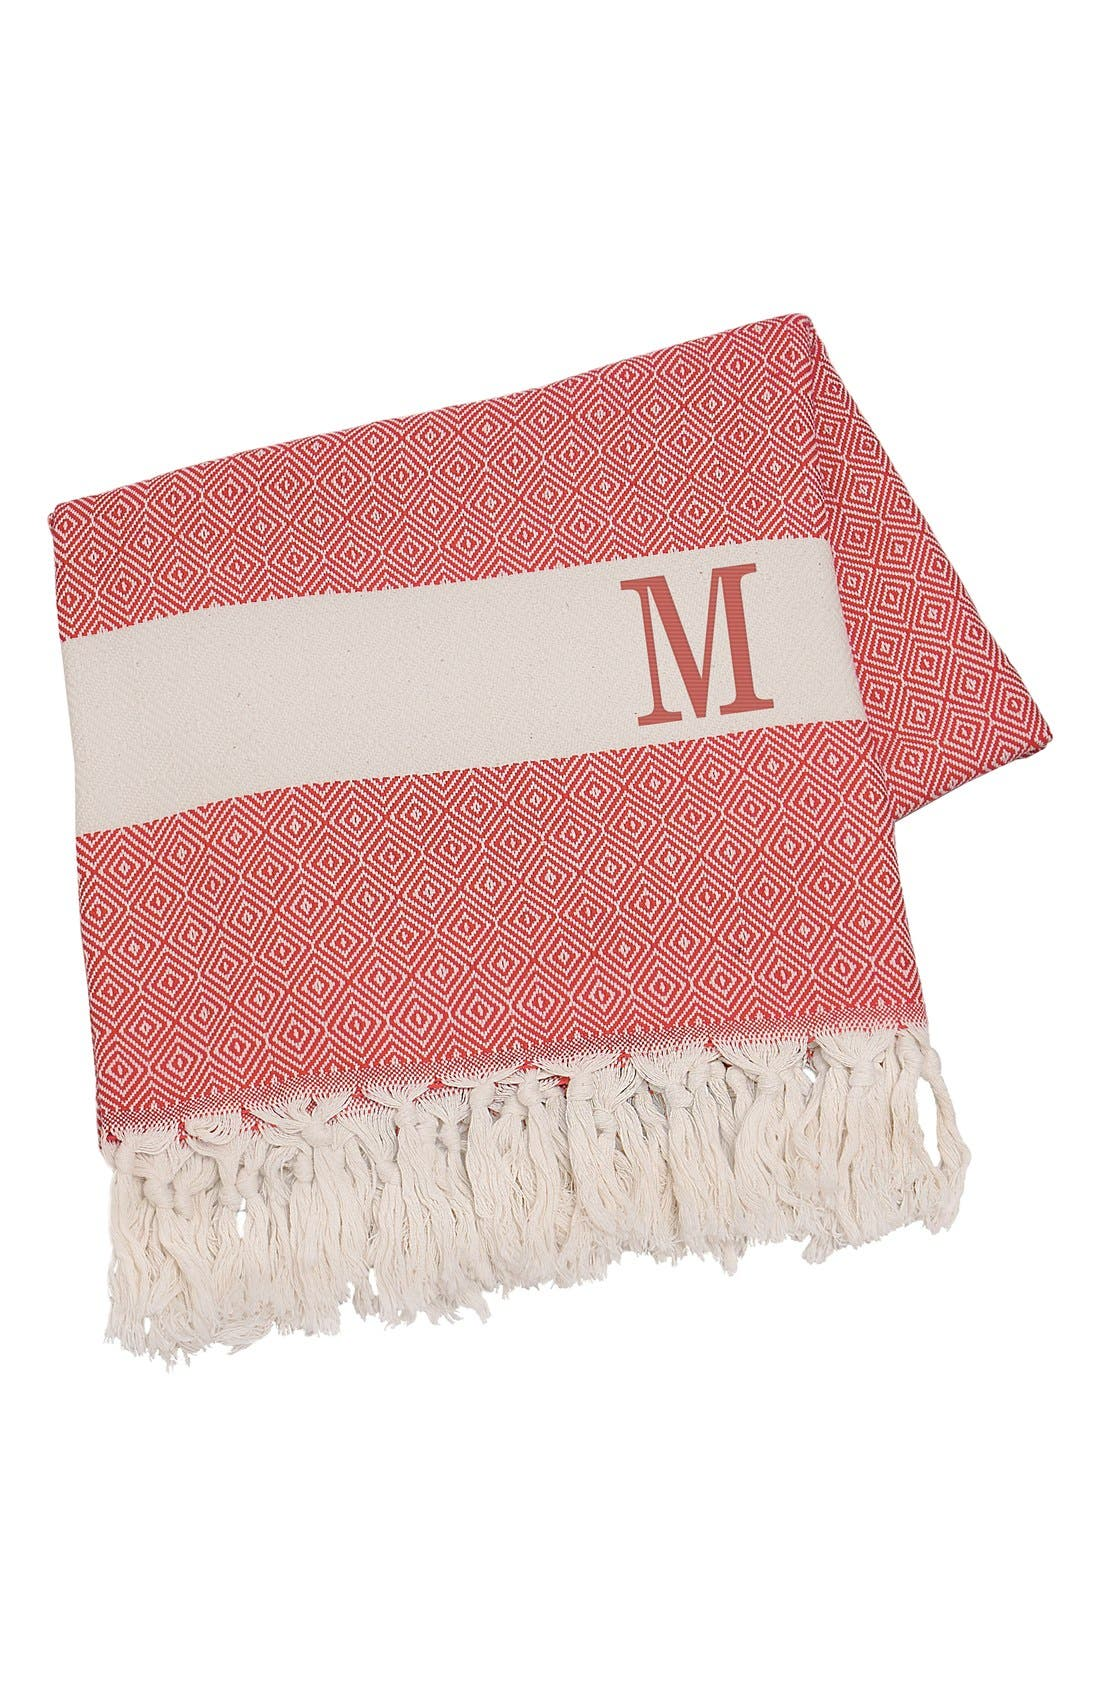 Main Image - Cathy's Concepts Monogram Turkish Cotton Throw